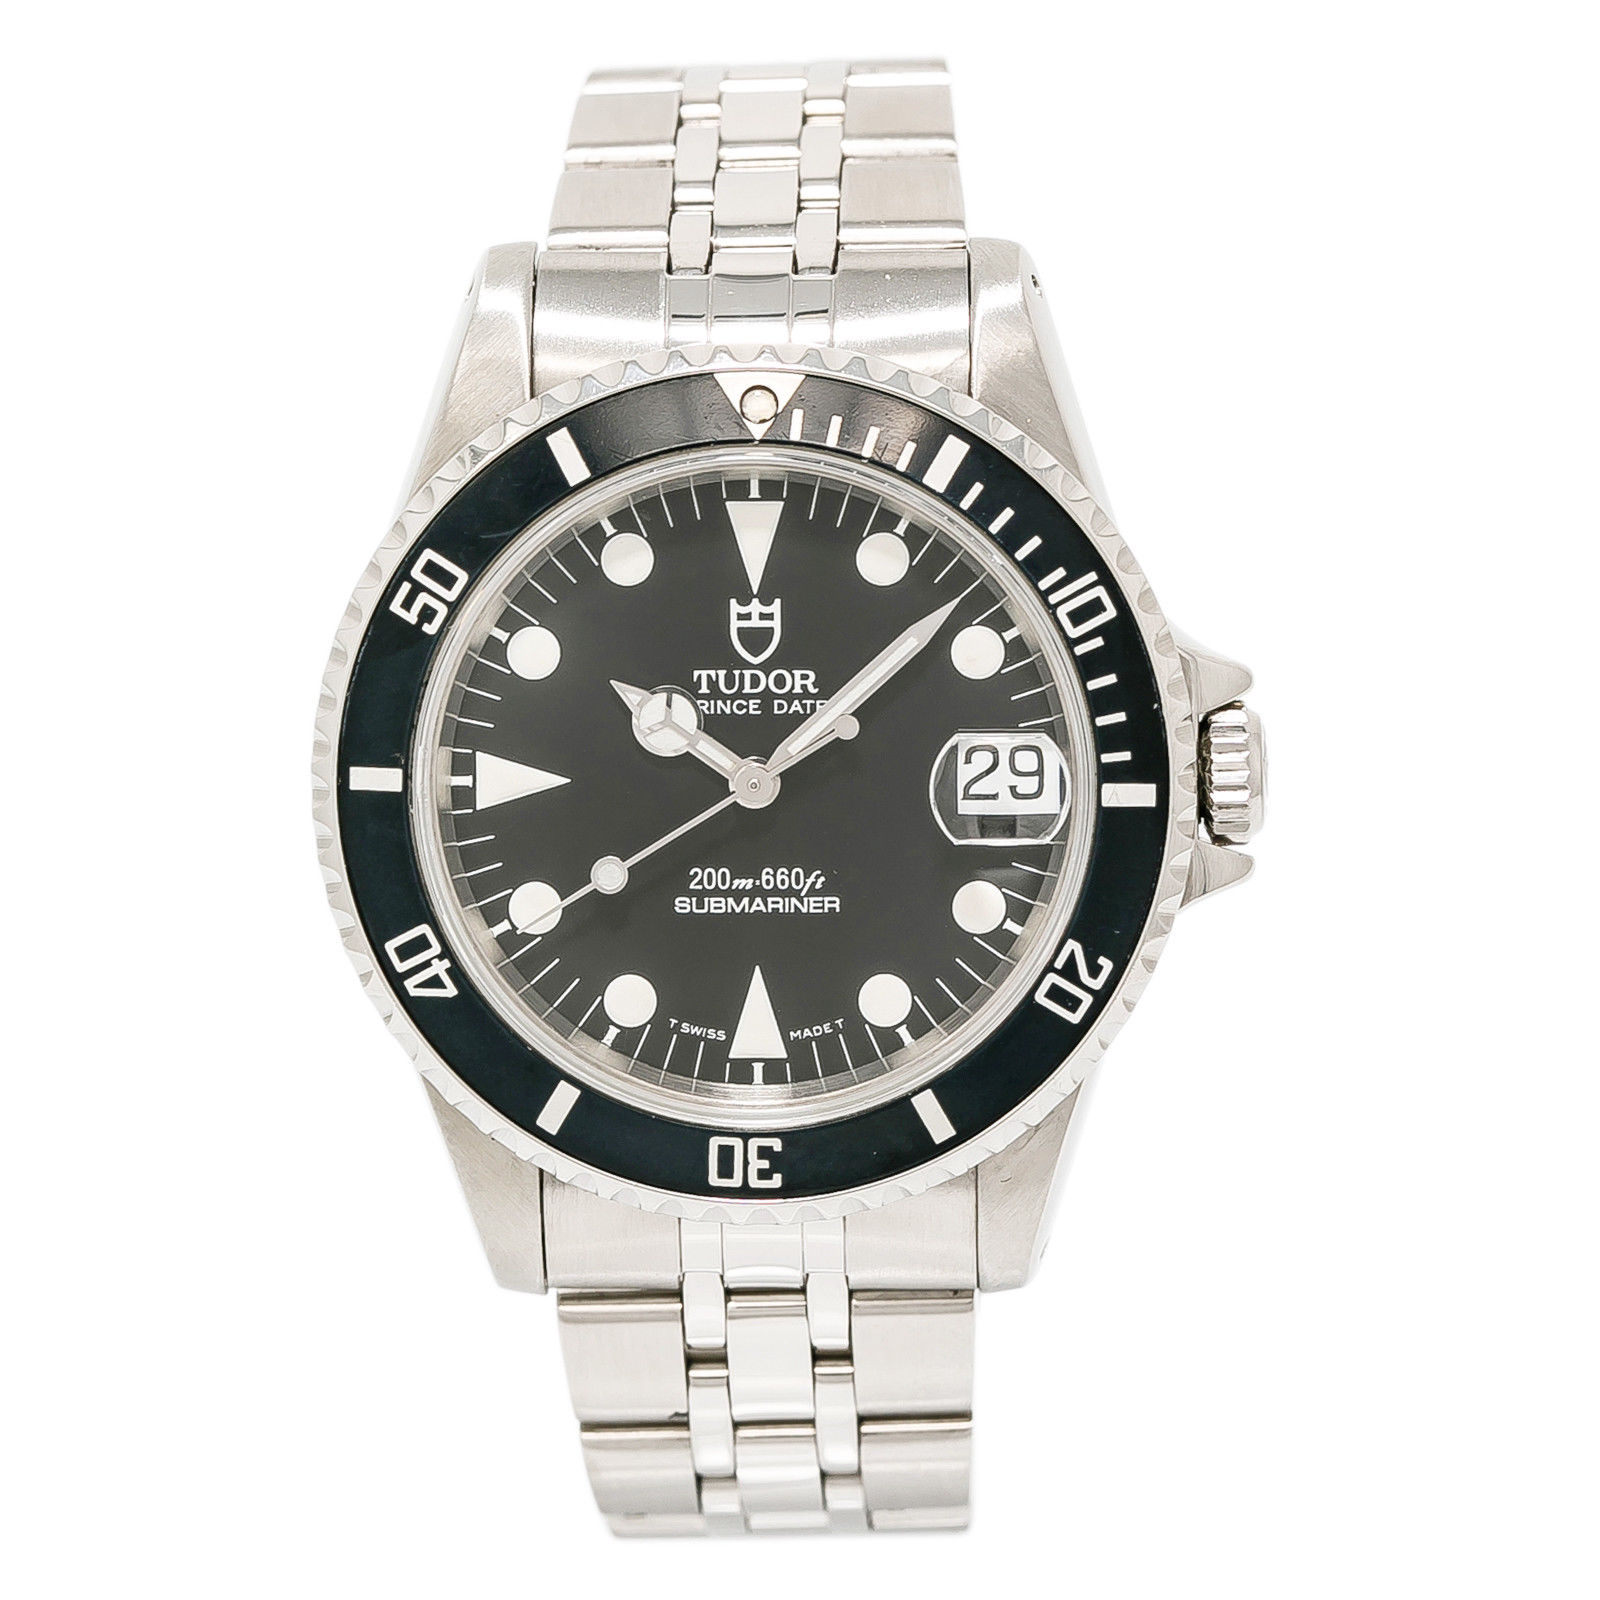 """Image of """"Tudor Prince Date Submariner 75190 Stainless Steel Black Dial"""""""